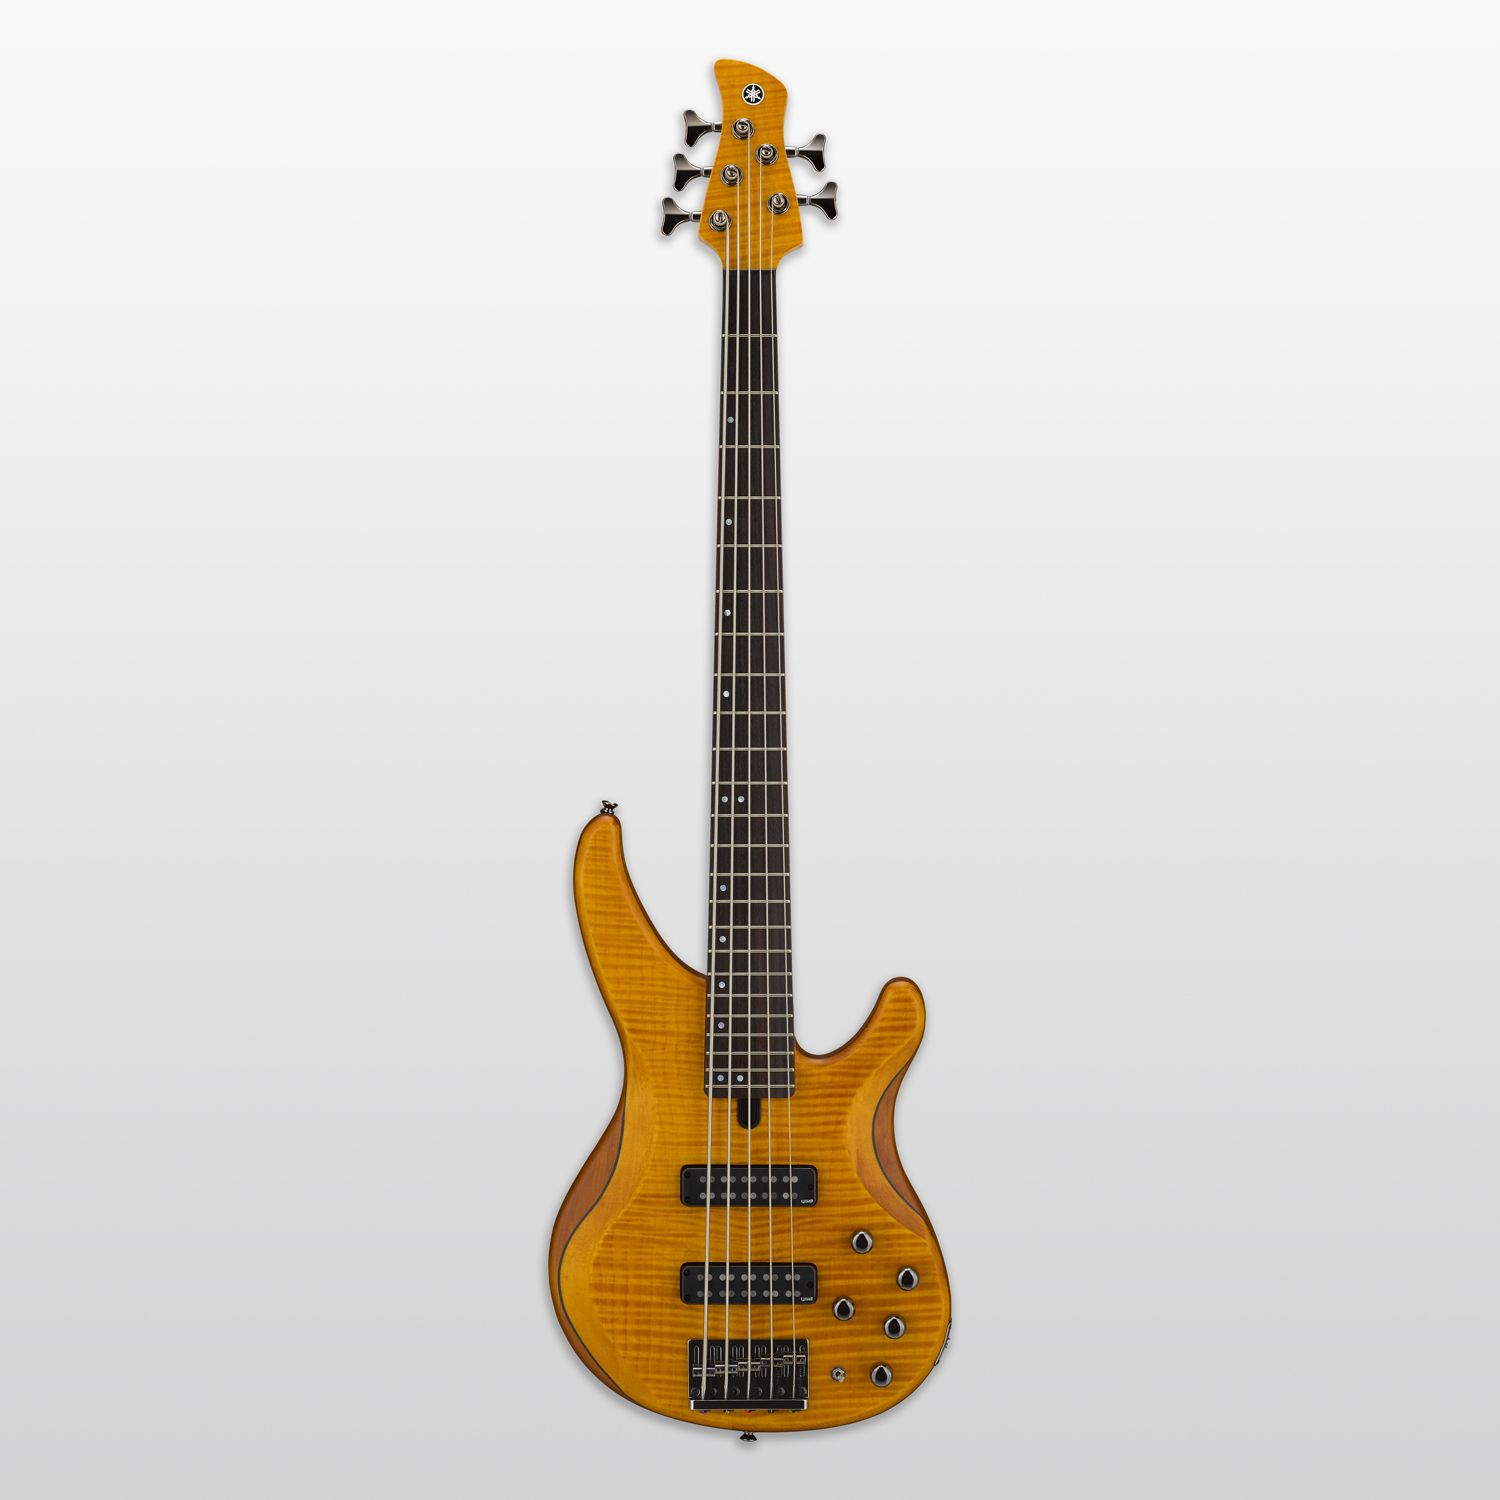 hight resolution of trbx downloads basses guitars basses musical instruments products yamaha united states